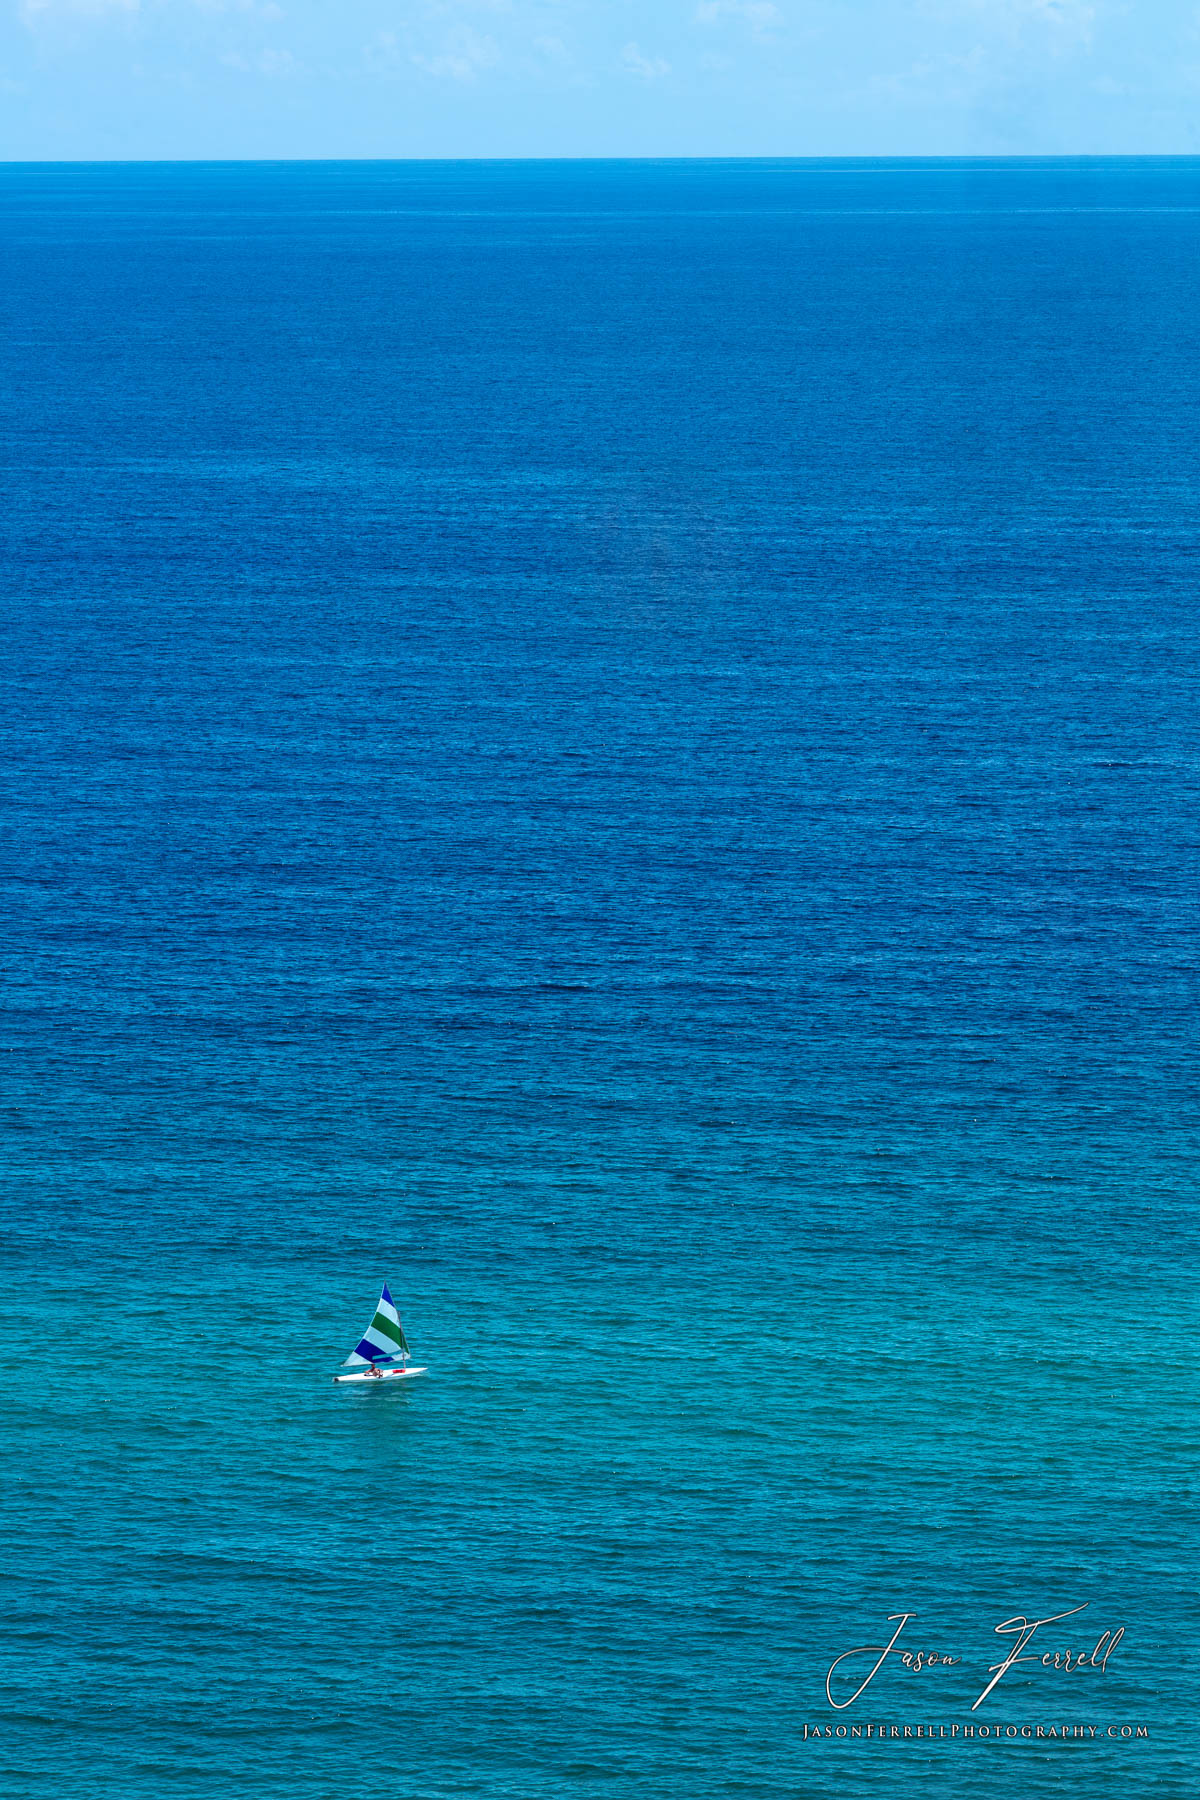 gulf of mexico, sailboat, blue, green, water, ocean, clear, santa rosa island, photo